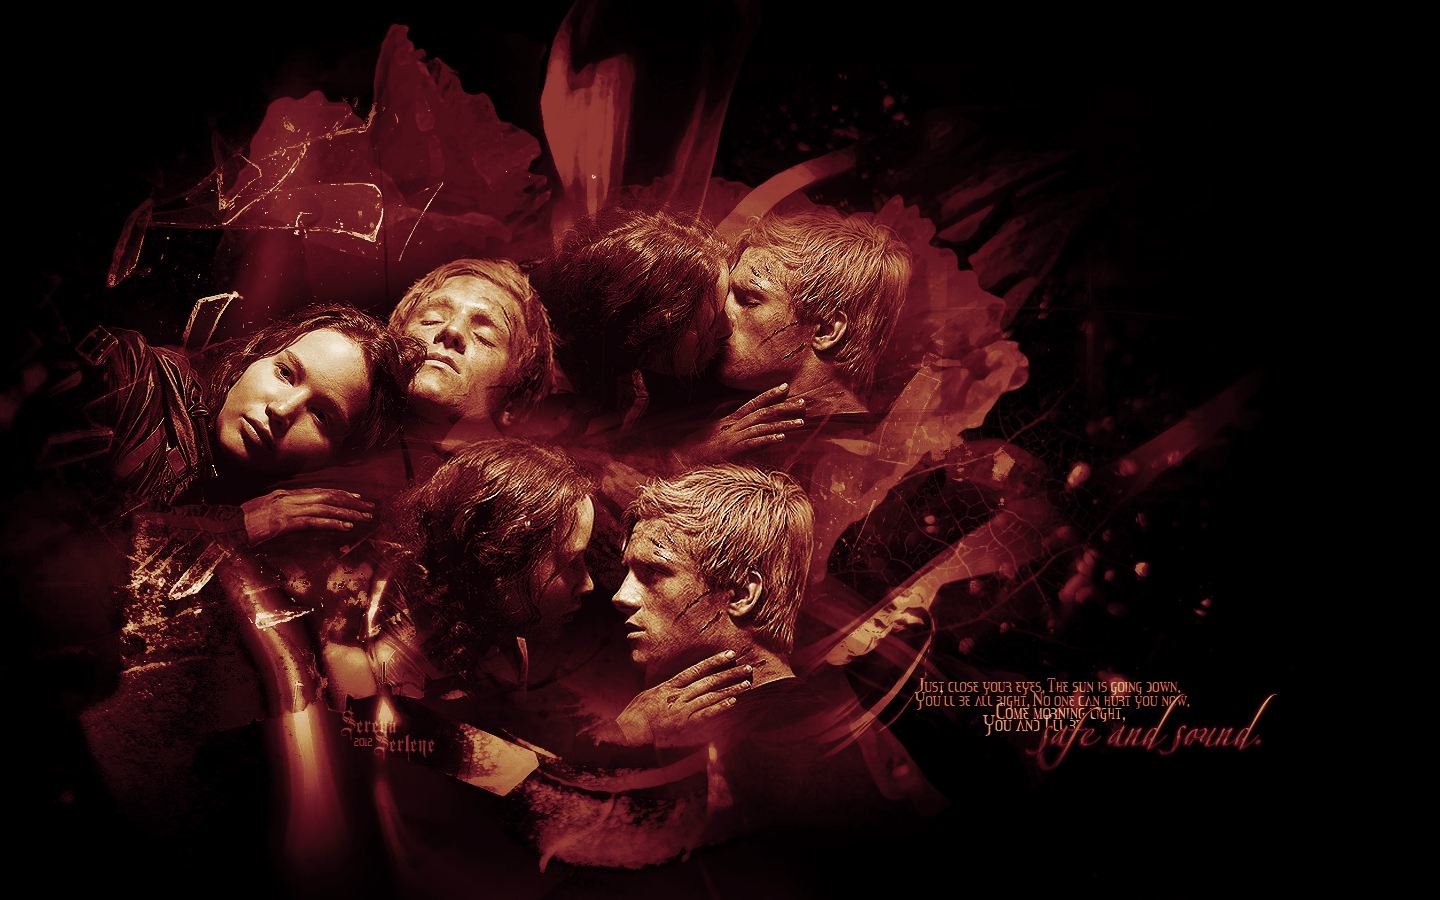 The Hunger Games The Hunger Games Wallpaper 30394736